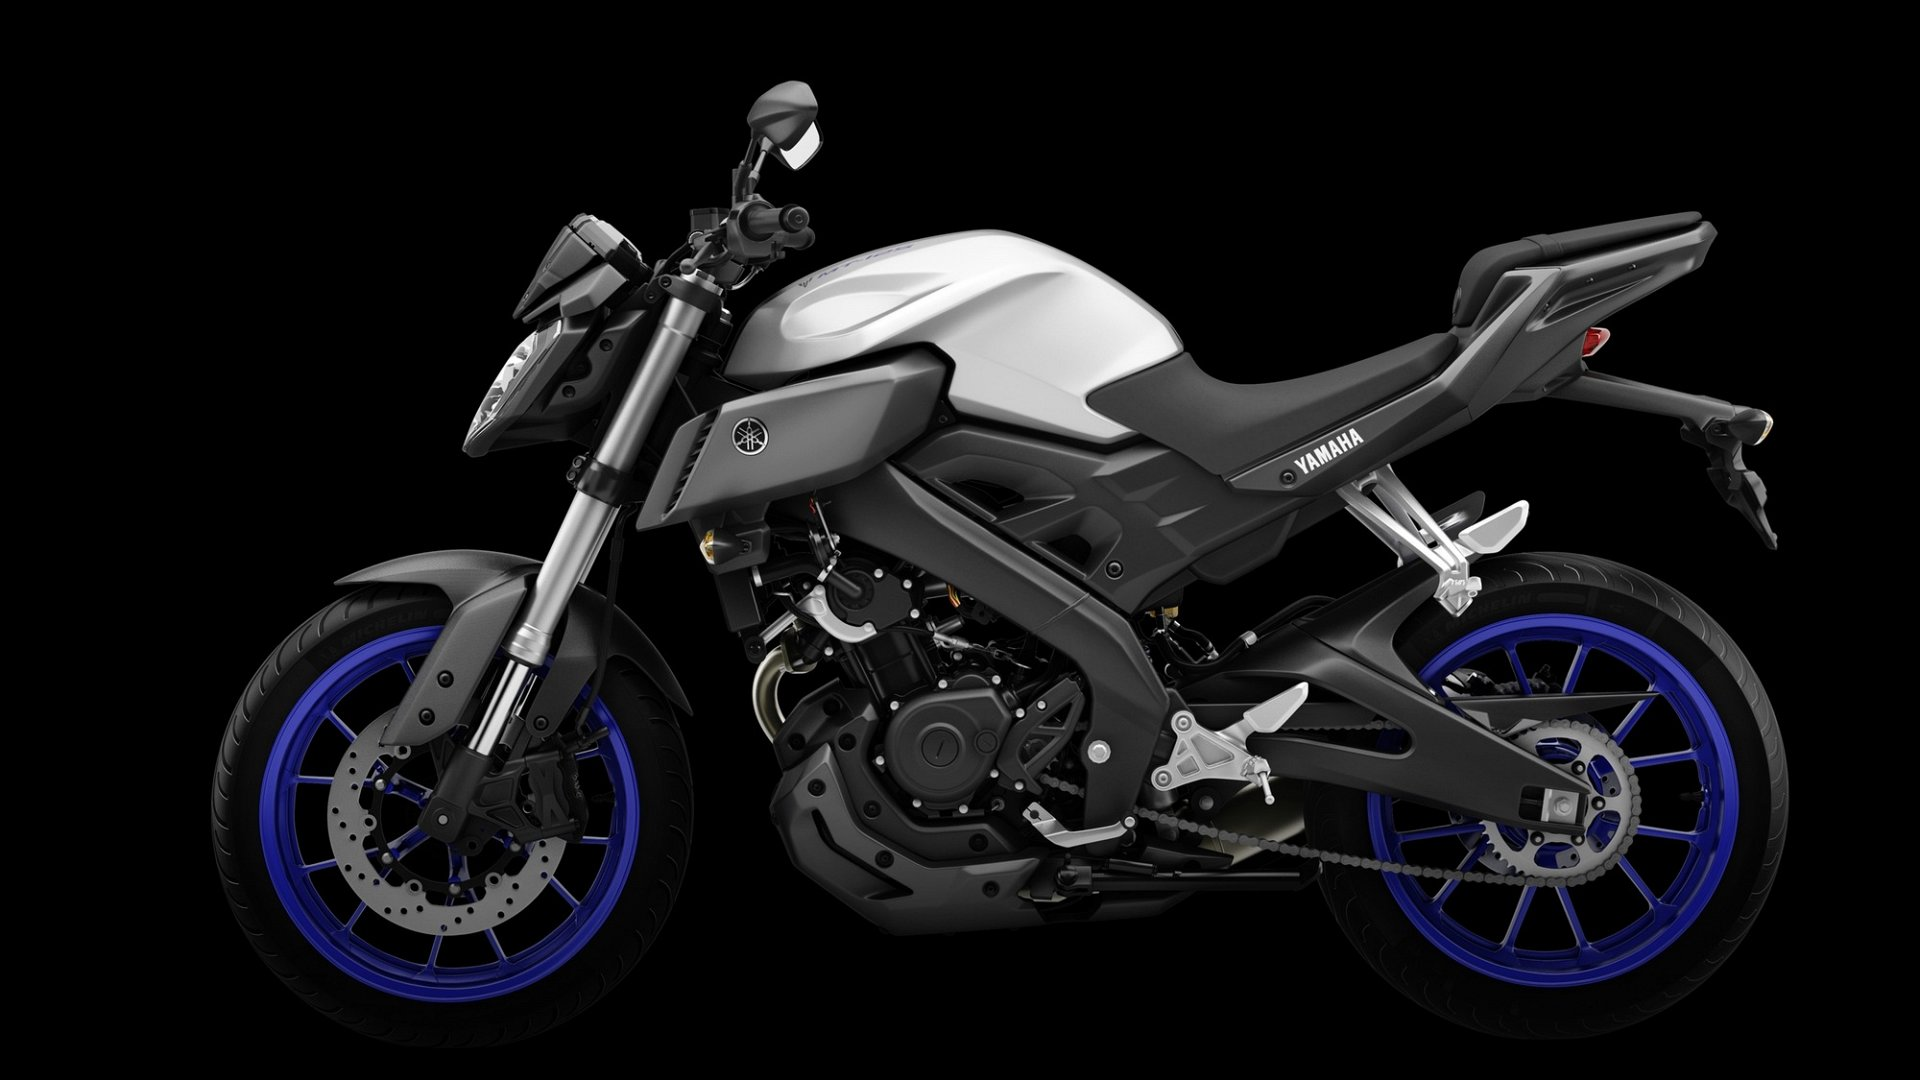 new 2014 yamaha mt 125 for sale finance available and part exchange welcome cmc motorcycles. Black Bedroom Furniture Sets. Home Design Ideas